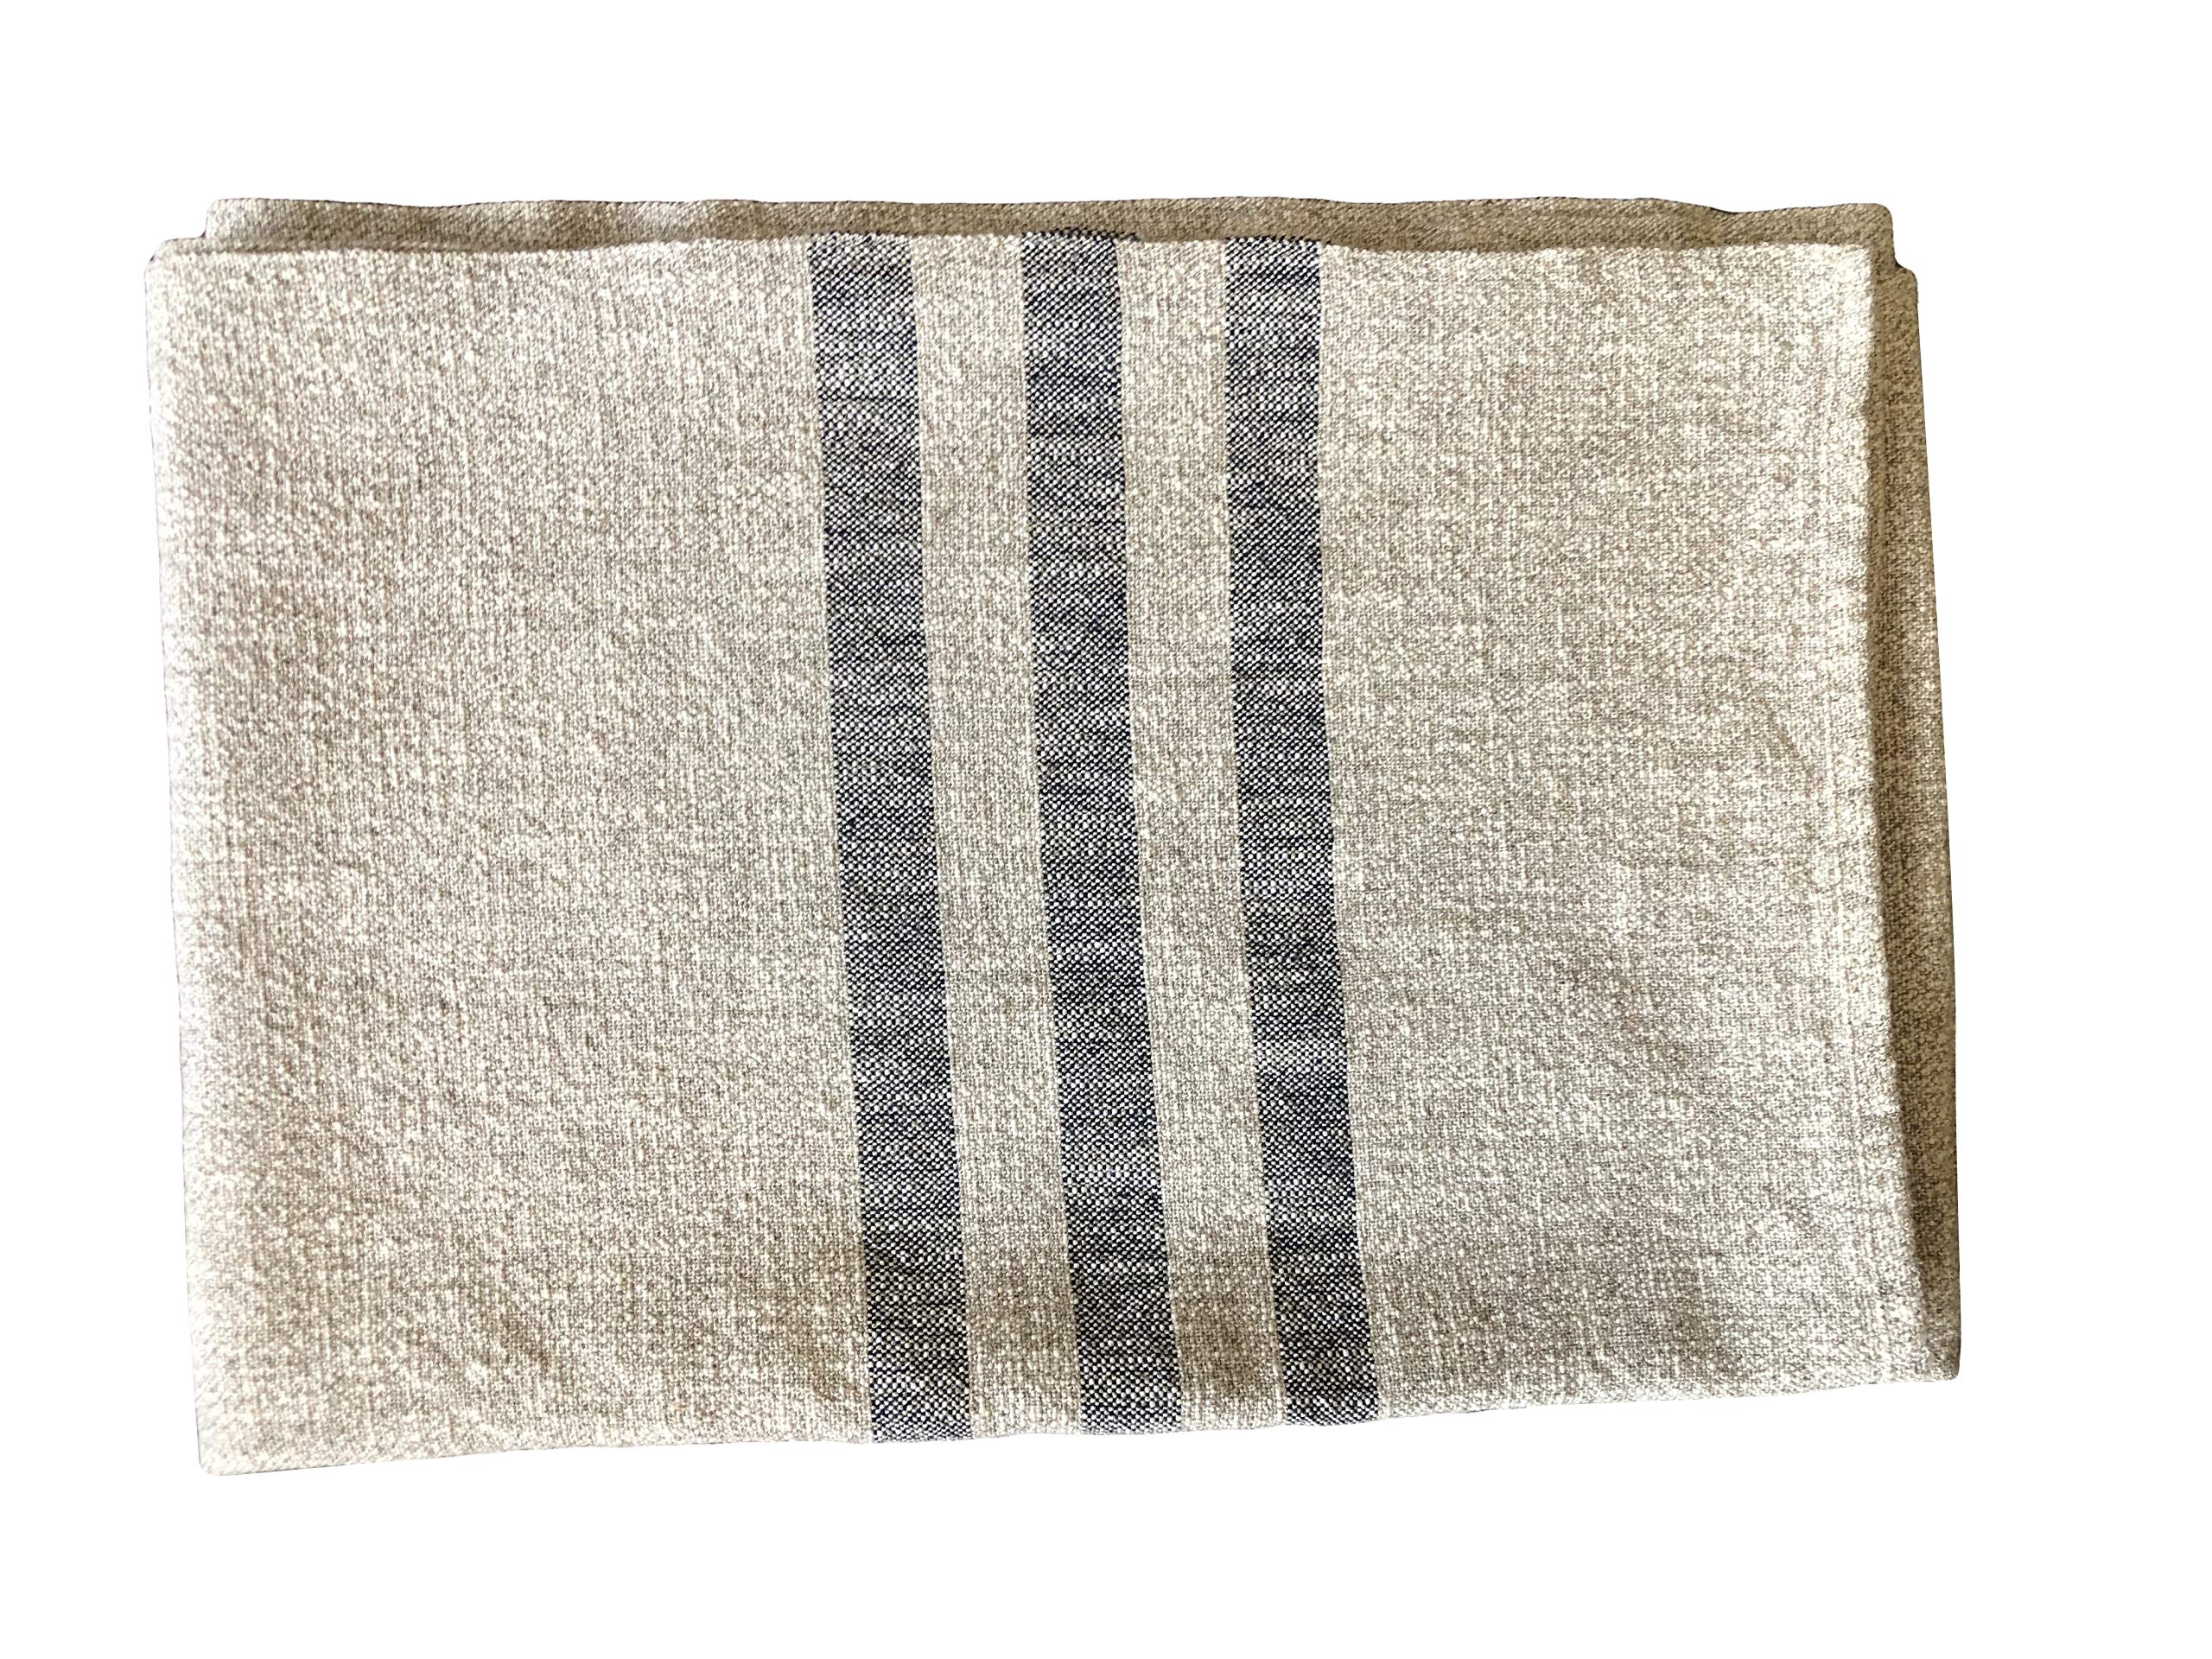 Hope Woodworking Cotton, Woven Throw Blanket, Cream with Navy Stripe, 52''x80'', Ruby Stripe Pattern, American Made